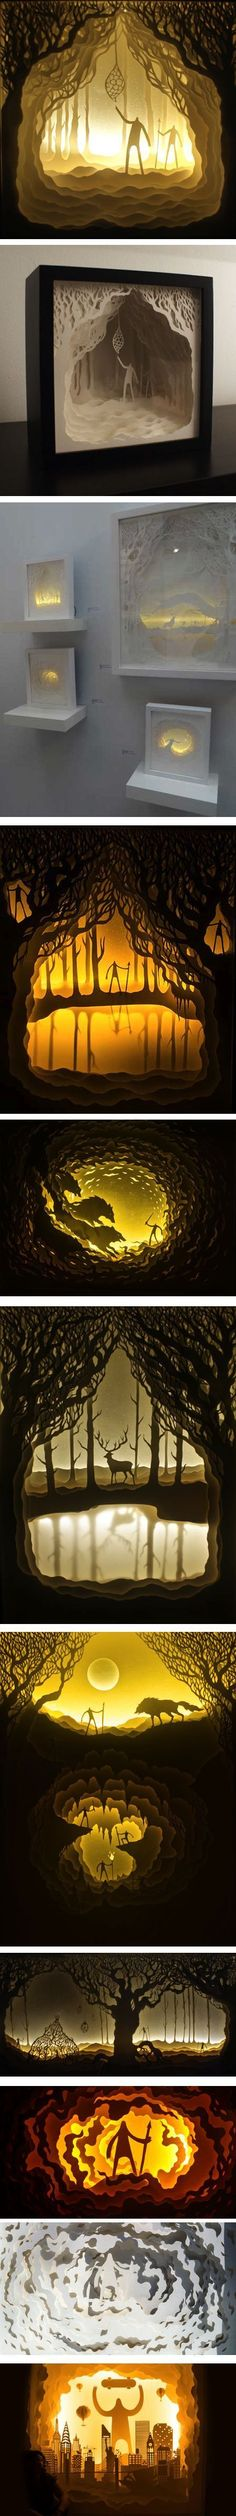 Harikrishnan Panicker and Deepti Nair create cut paper shadow boxes, illuminated with battery powered ligh